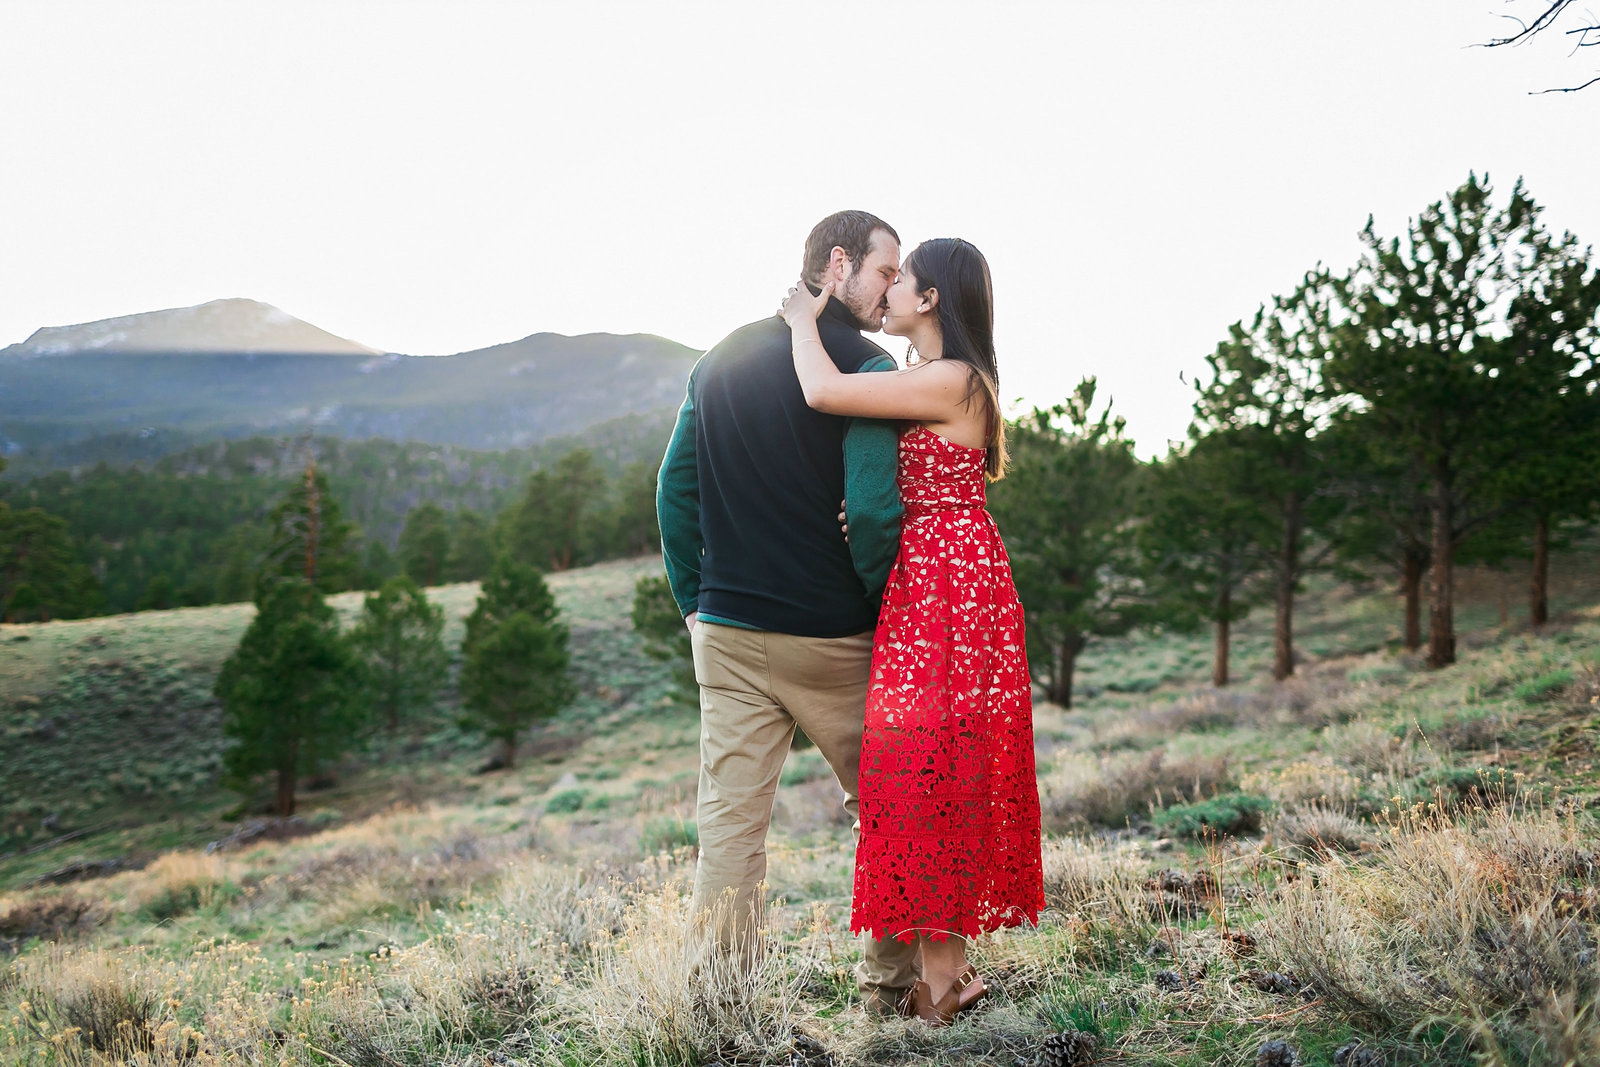 Scott&ElinaEngagement2017-27